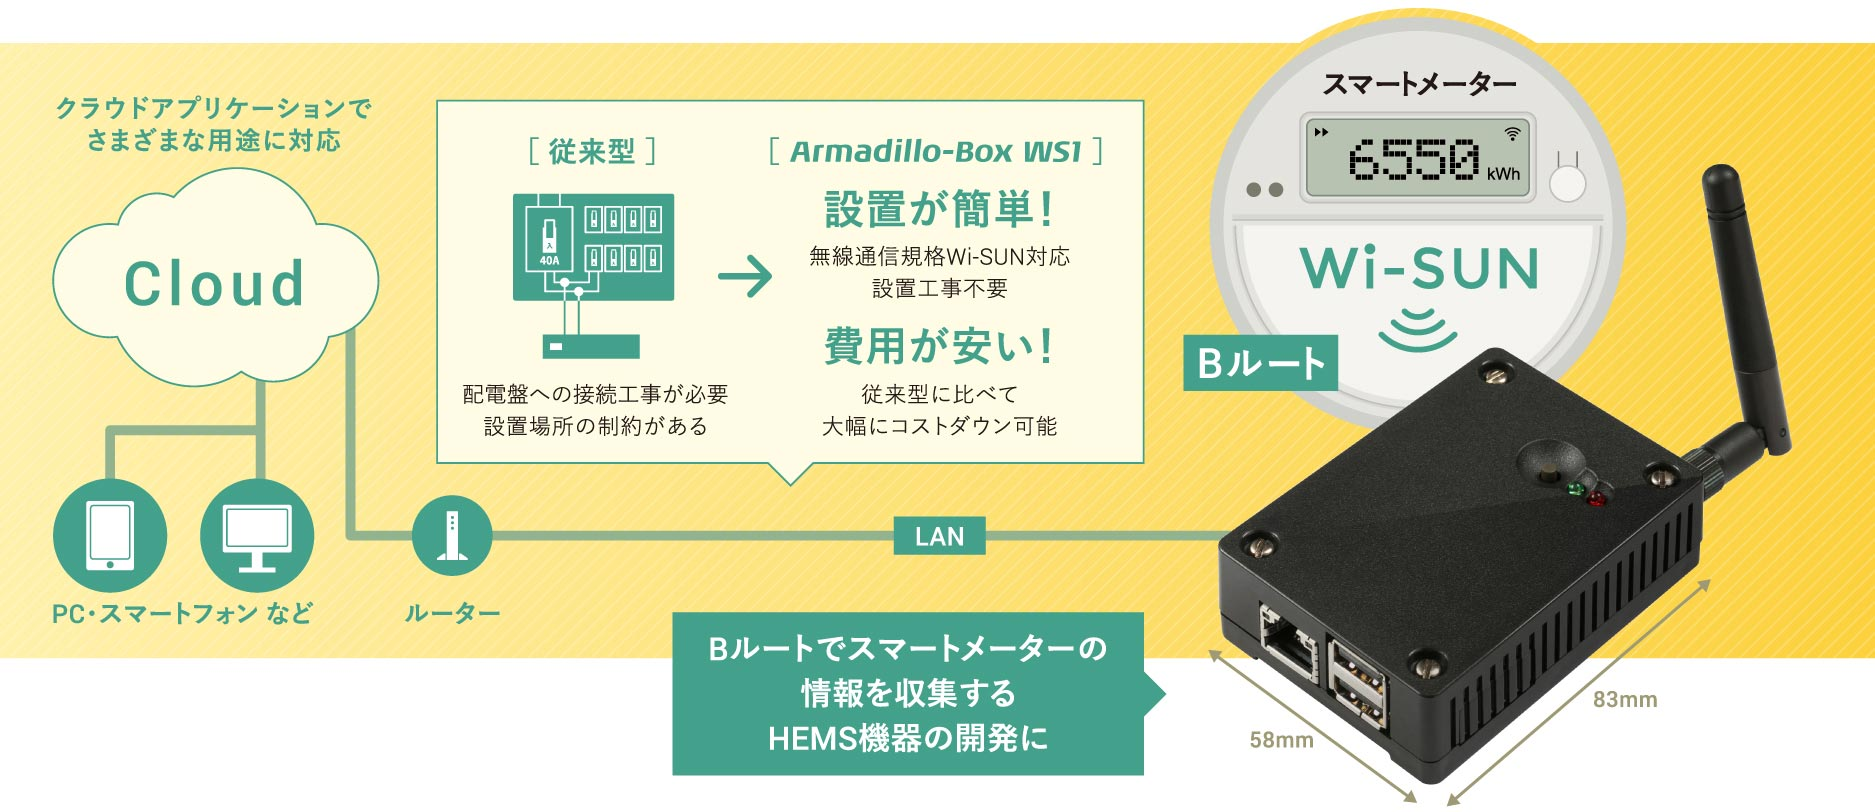 Armadillo-Box WS1全体像